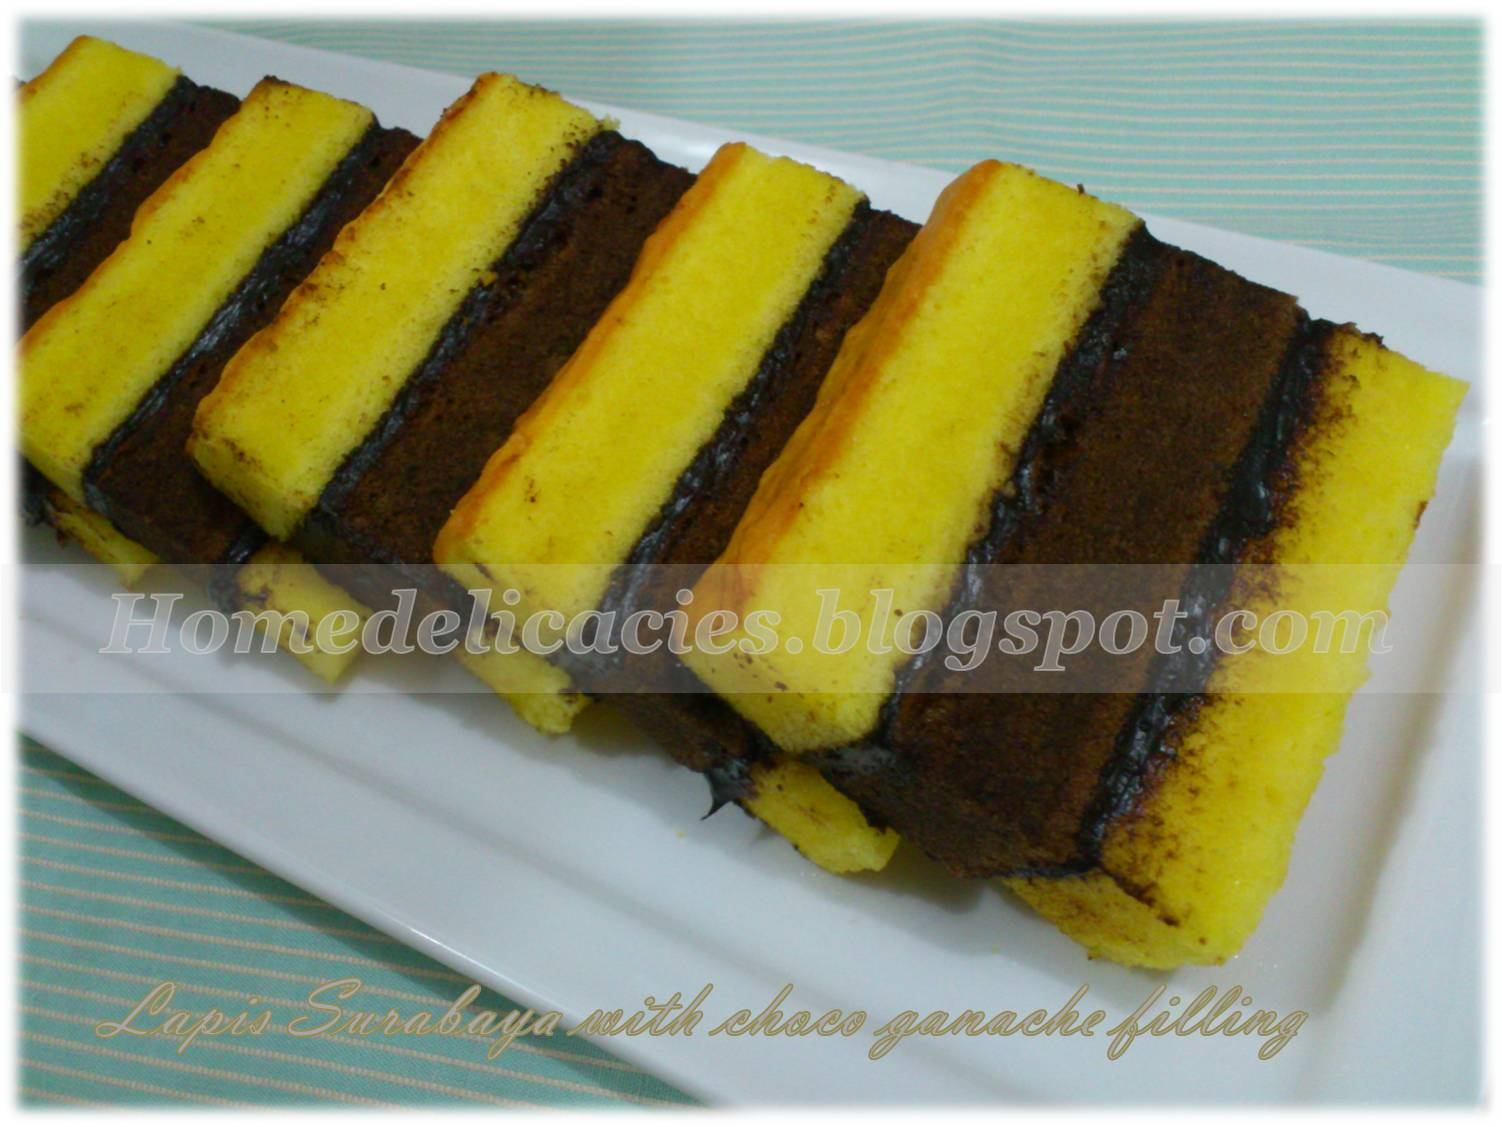 Resep Cake Jerman Ncc: Homedelicacies: Lapis Surabaya With Choco Ganache Filling